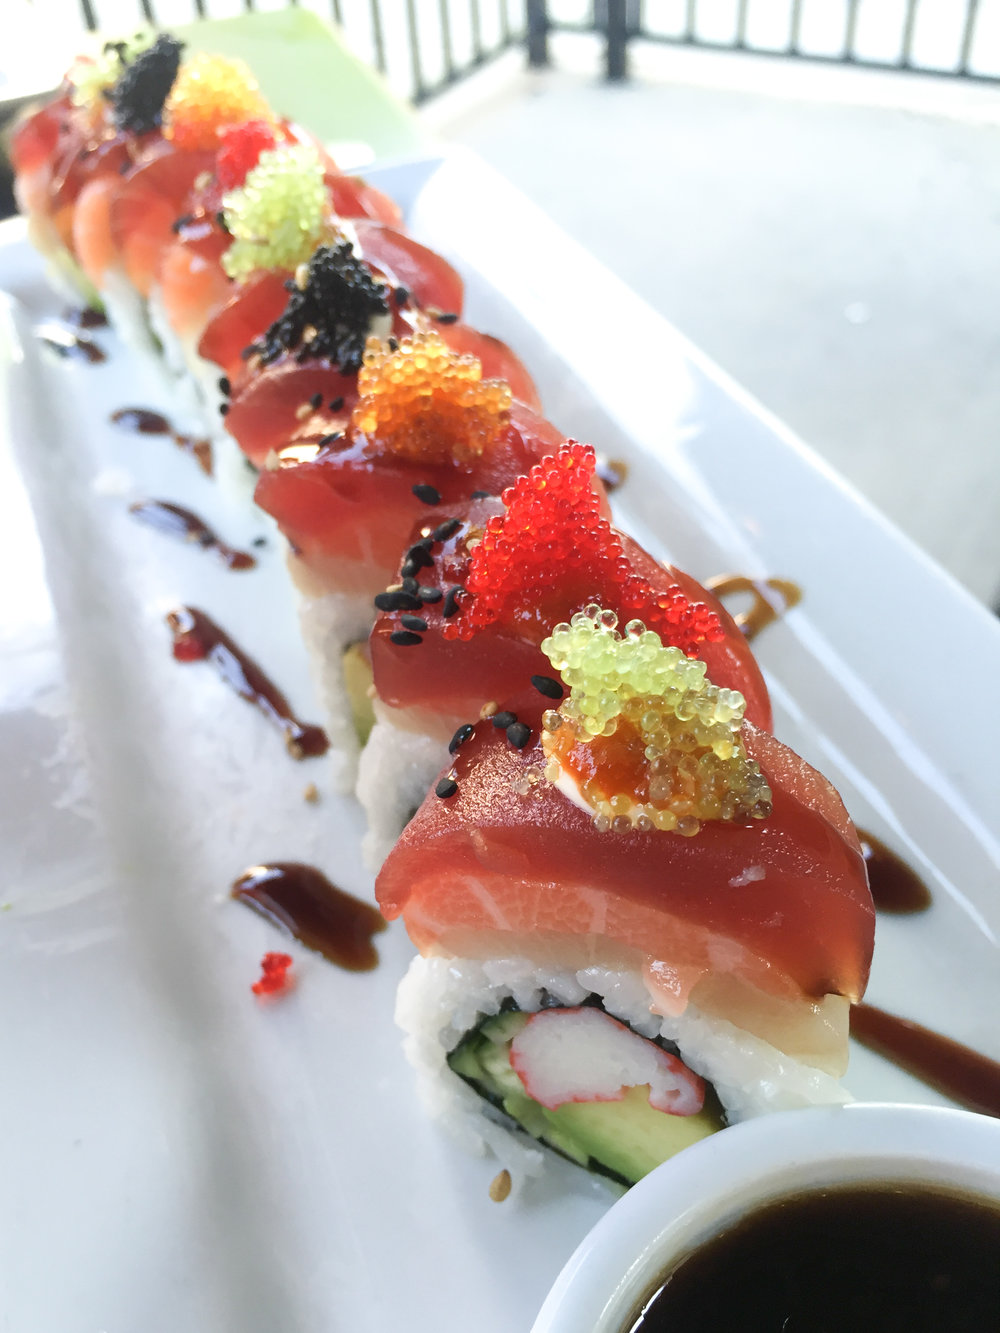 eez-fusion-sushi-huntersville-nc-tropical-strom-roll